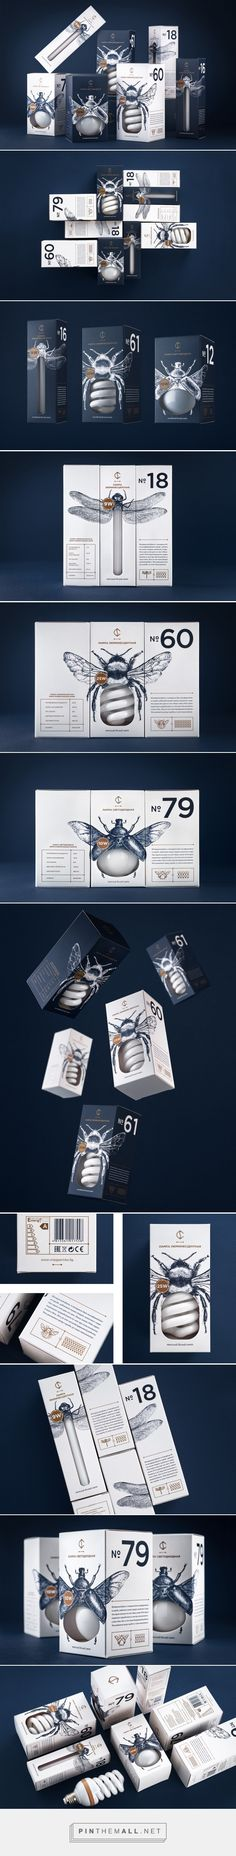 CS Light Bulbs packaging design by Angelina Pischikova Honey Packaging, Cool Packaging, Print Packaging, Bread Packaging, Graphisches Design, Label Design, Branding Design, Package Design, Packaging Design Inspiration